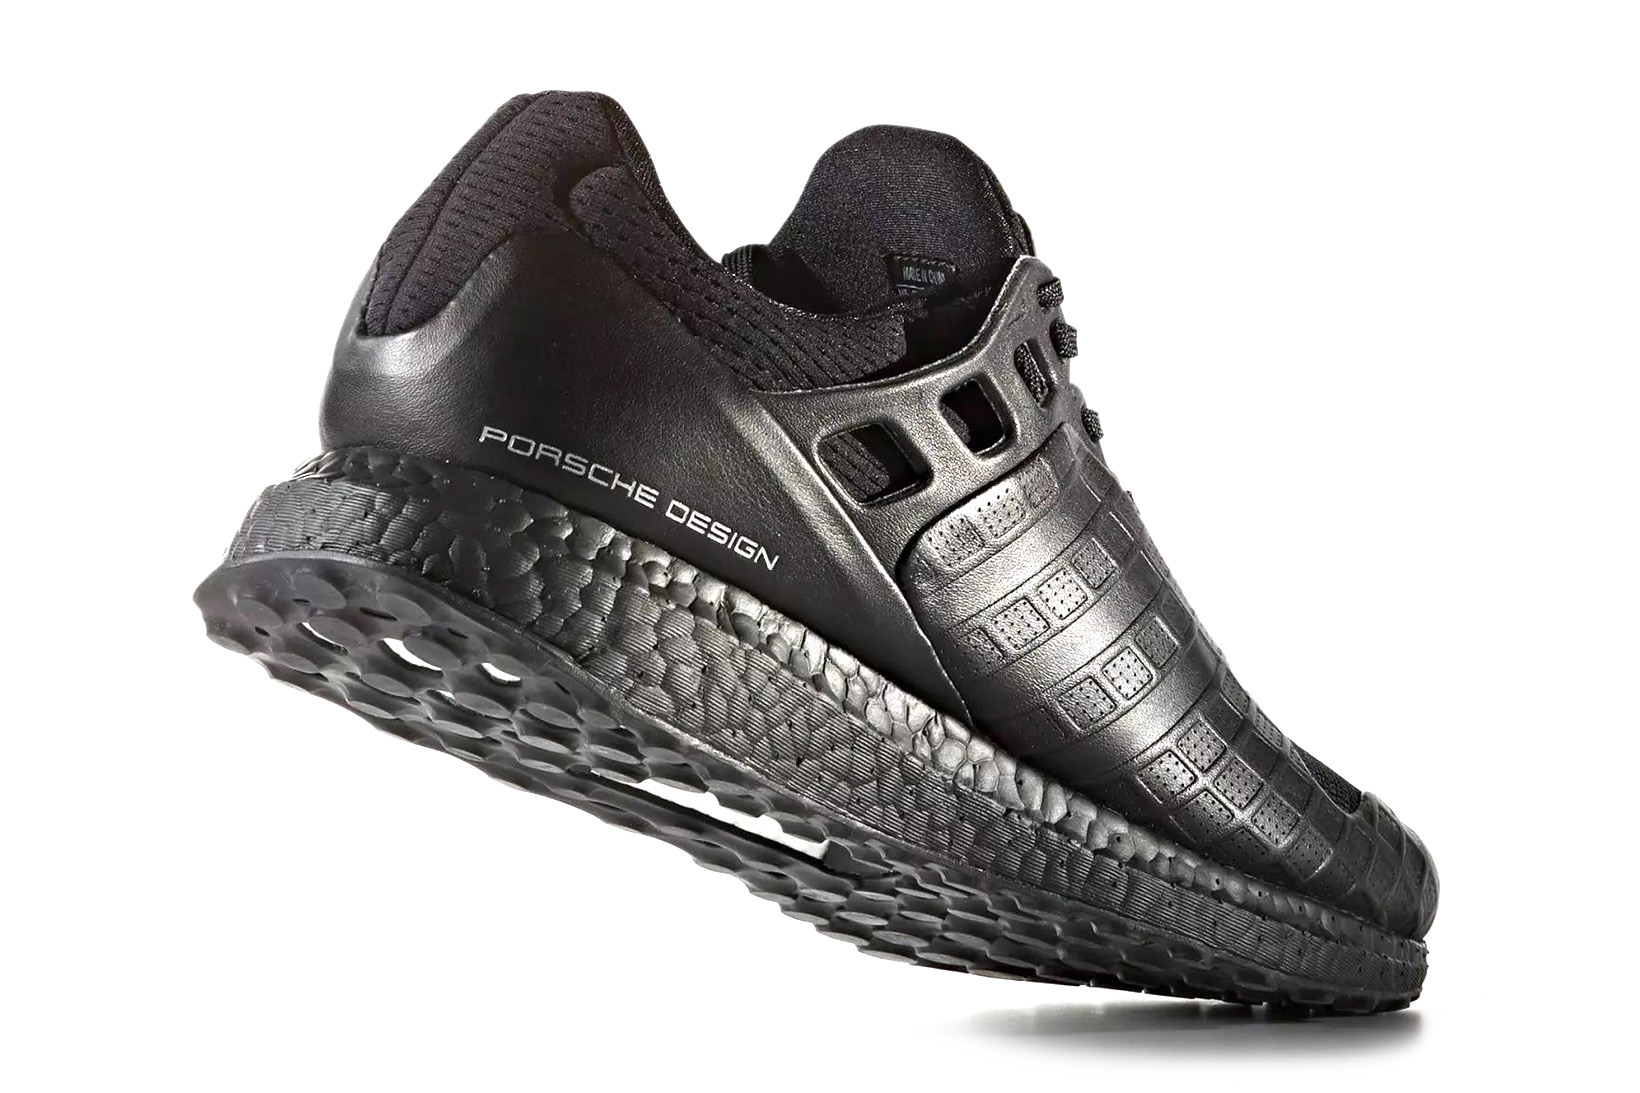 porsche design x adidas ultraboost triple black hypebeast. Black Bedroom Furniture Sets. Home Design Ideas